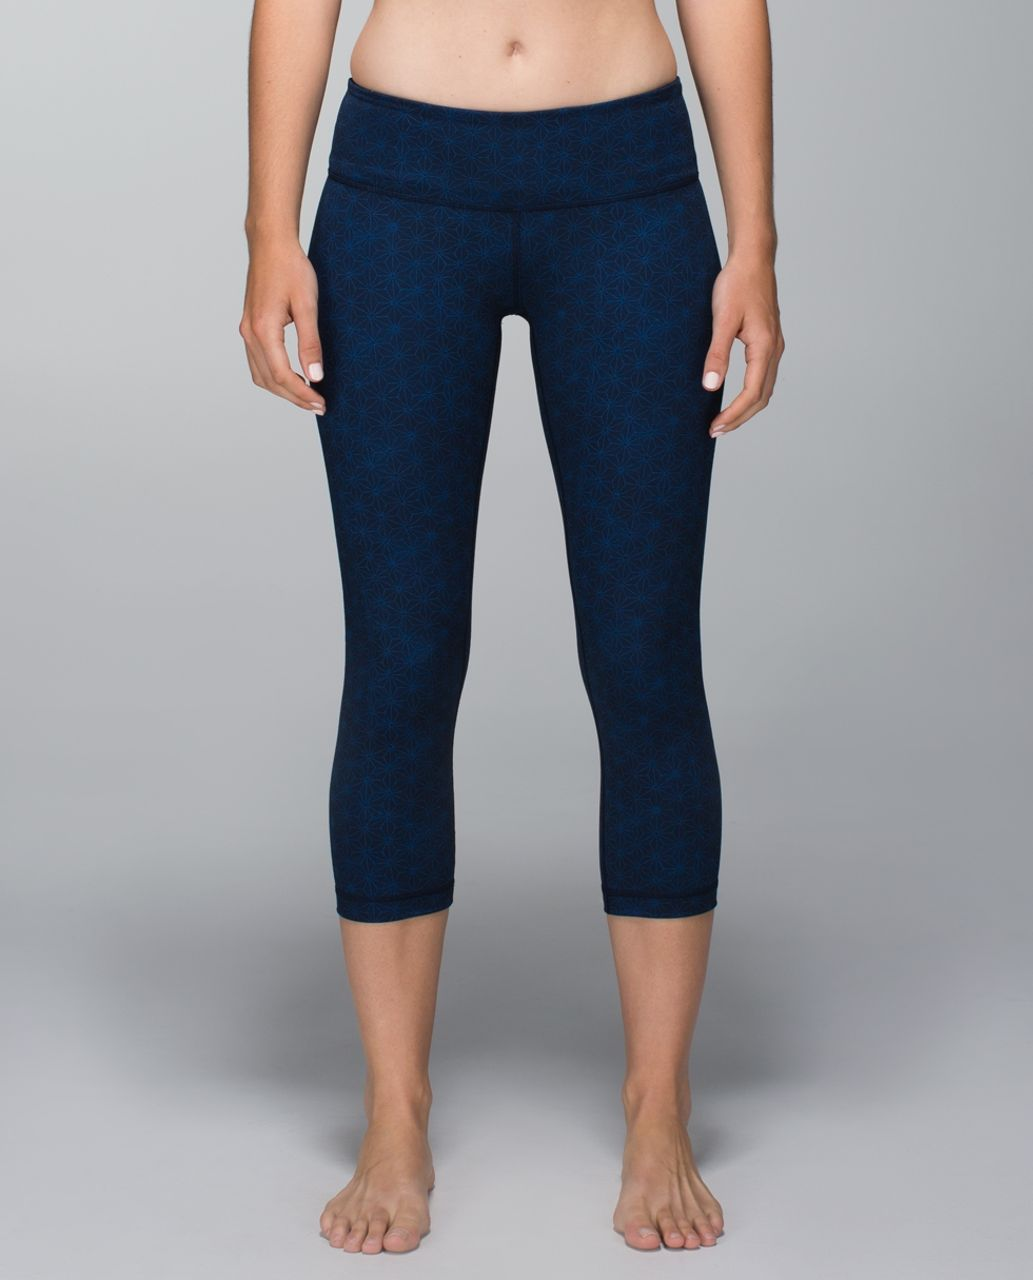 Lululemon Wunder Under Crop II *Full-On Luon (Print) - Sashico Star Inkwell Rugged Blue / Sashico Cross Inkwell Rugged Blue